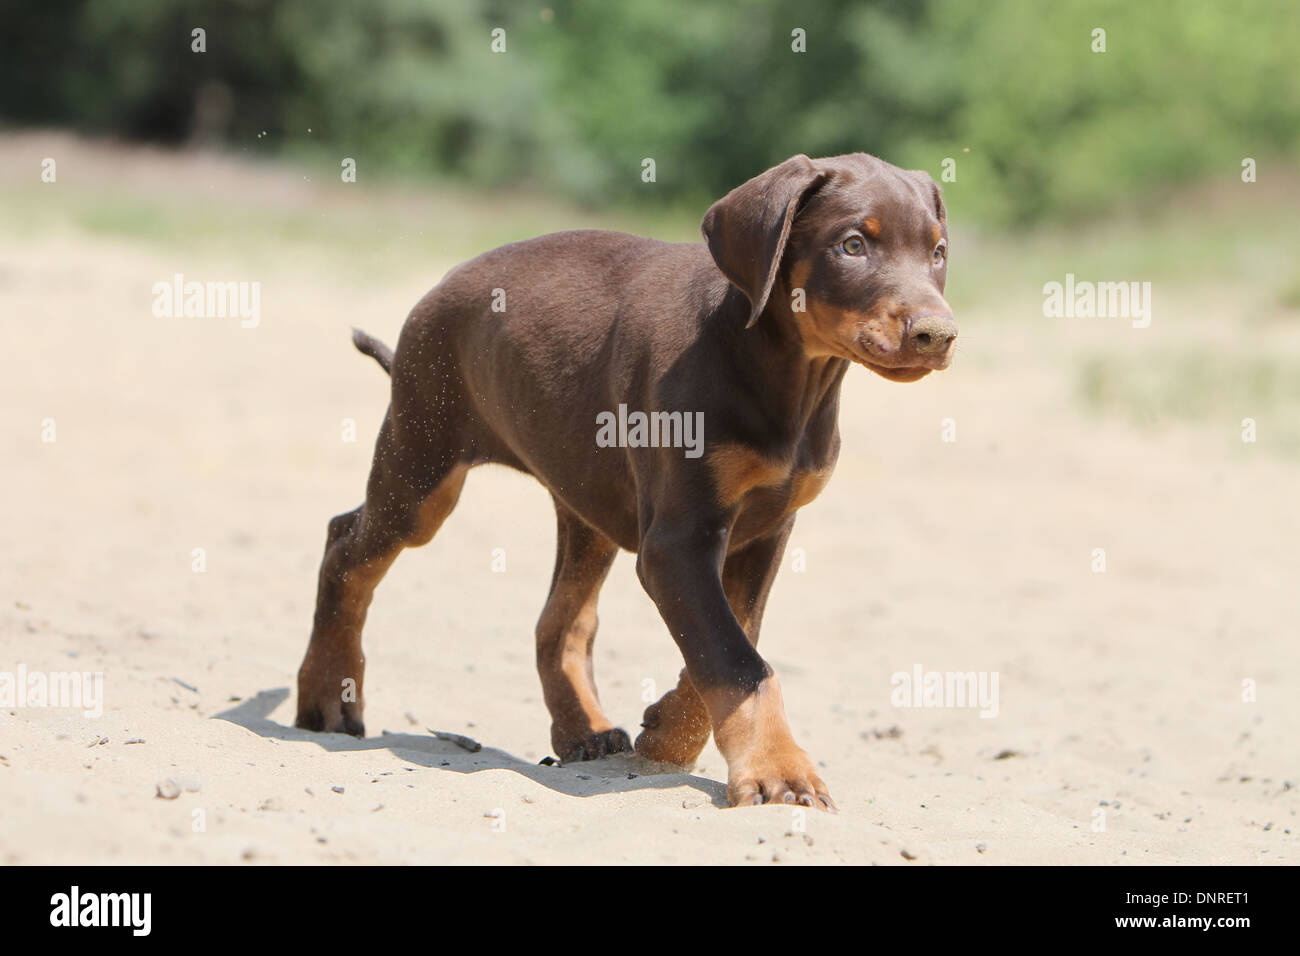 Dog Dobermann Doberman Pinscher Natural Ears Puppy Walking On